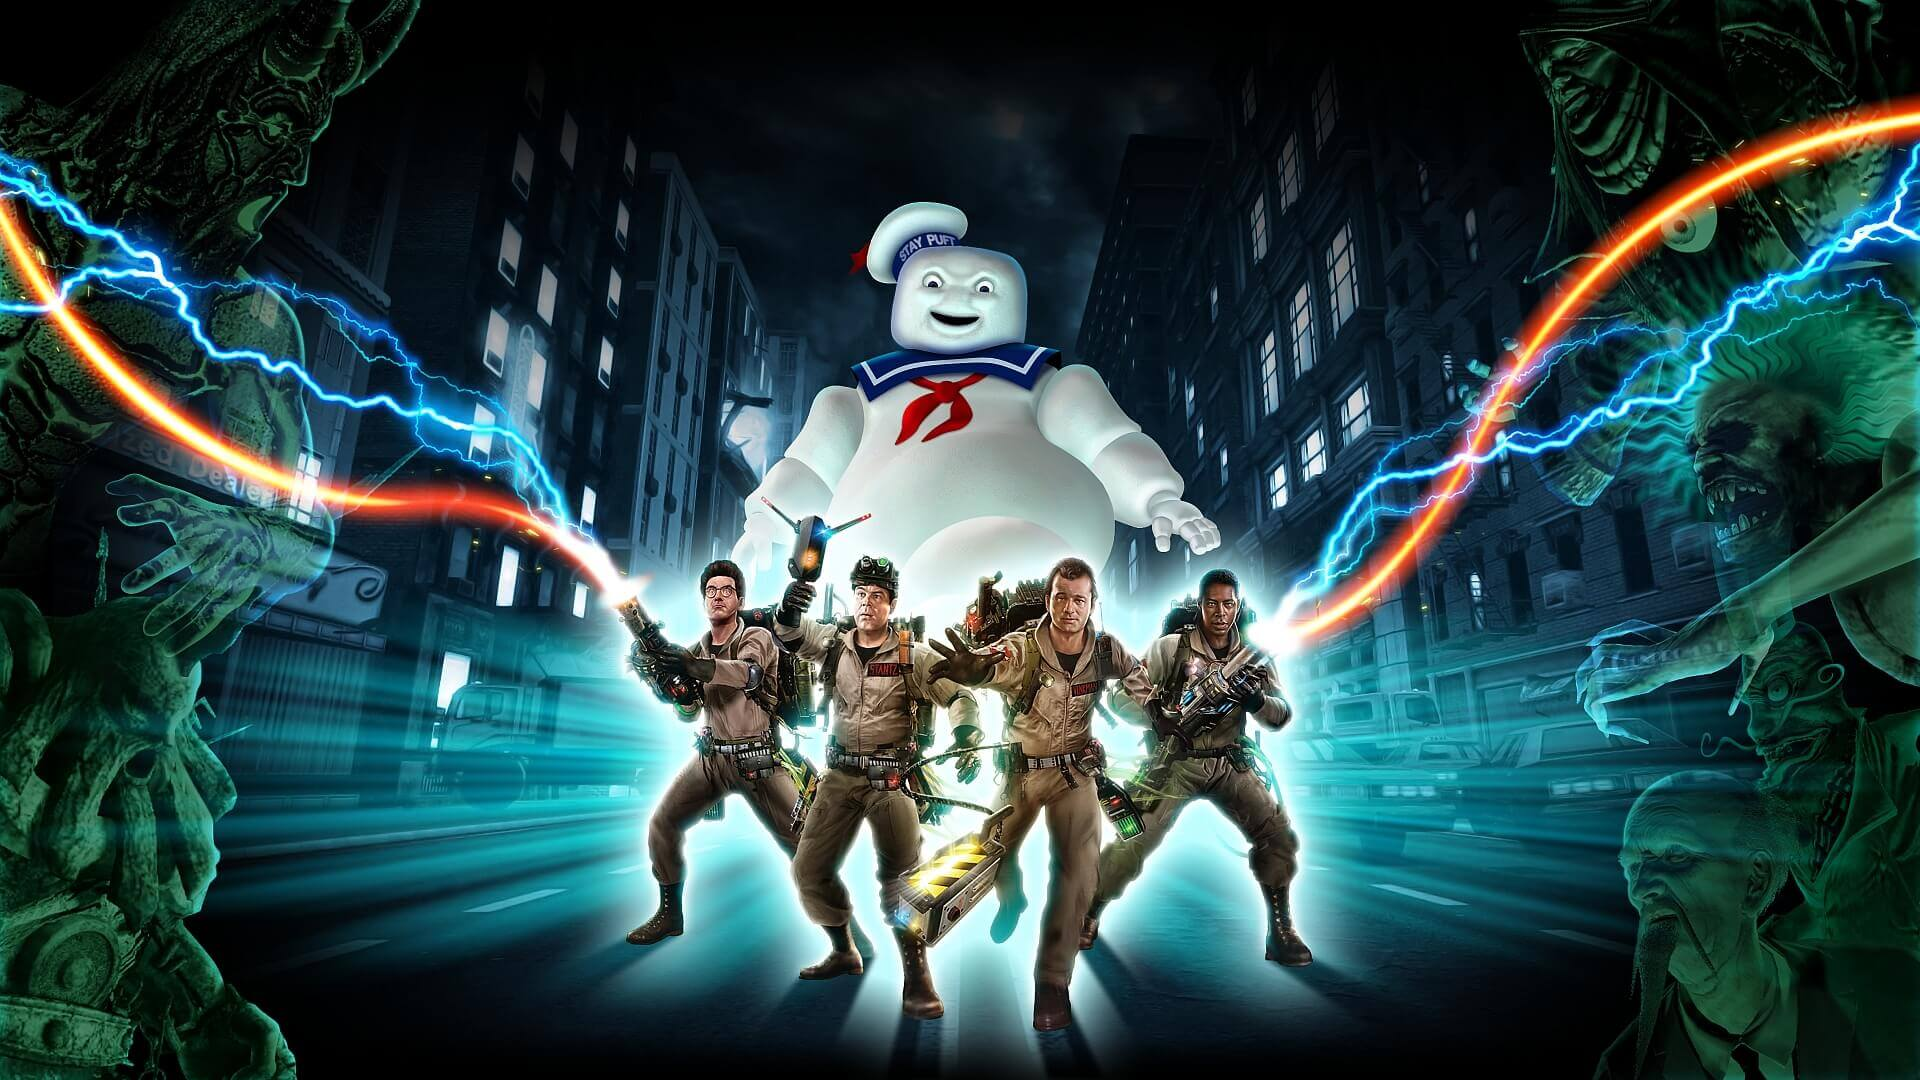 Ghostbusters Video Game Remastered Trailer Reveals the High-Res Re-Release